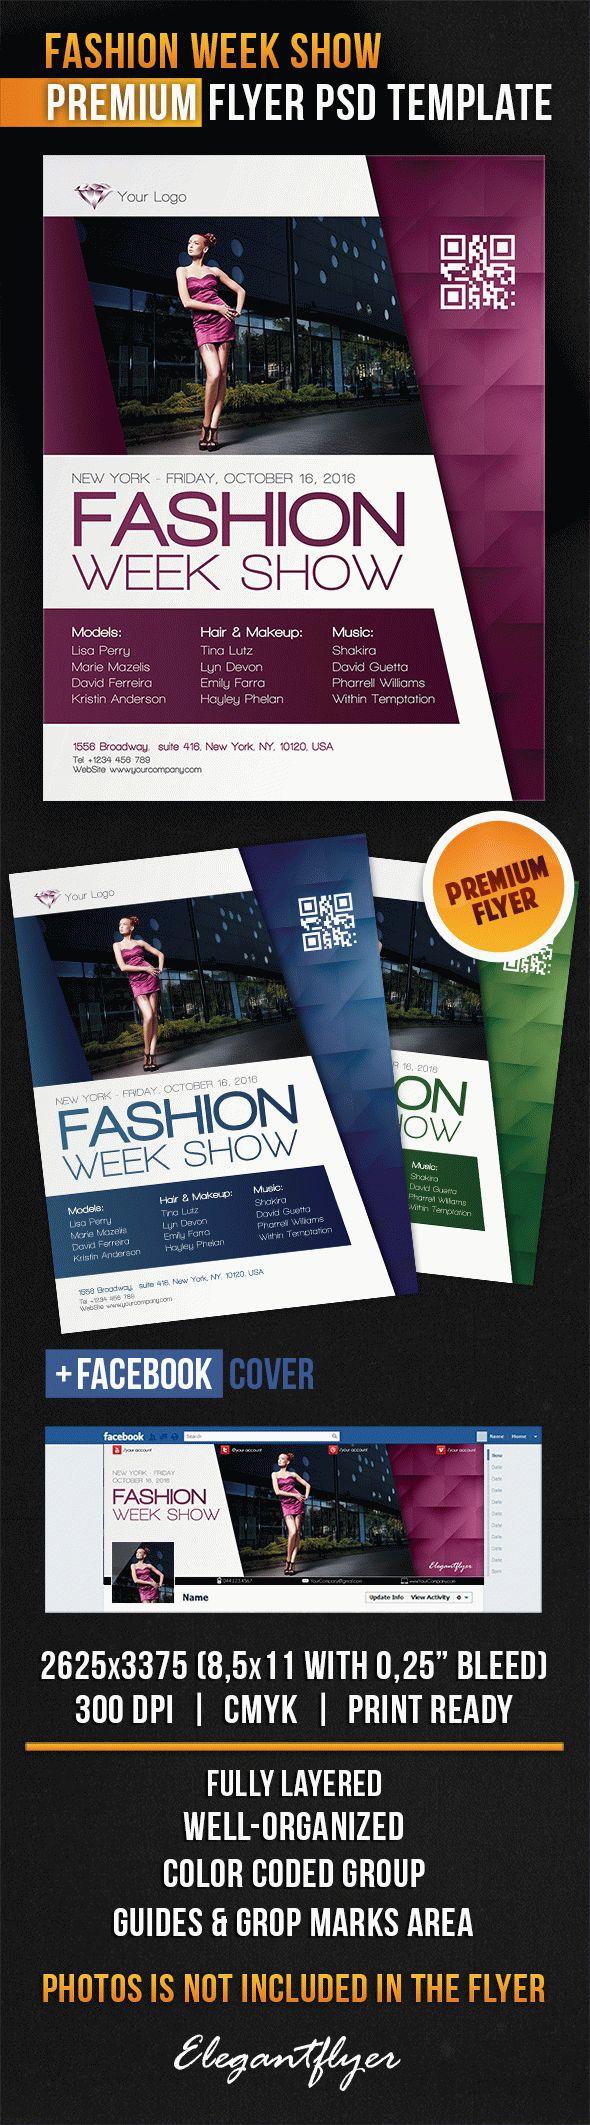 Fashion week show flyer psd template facebook cover for Fashion flyers templates for free